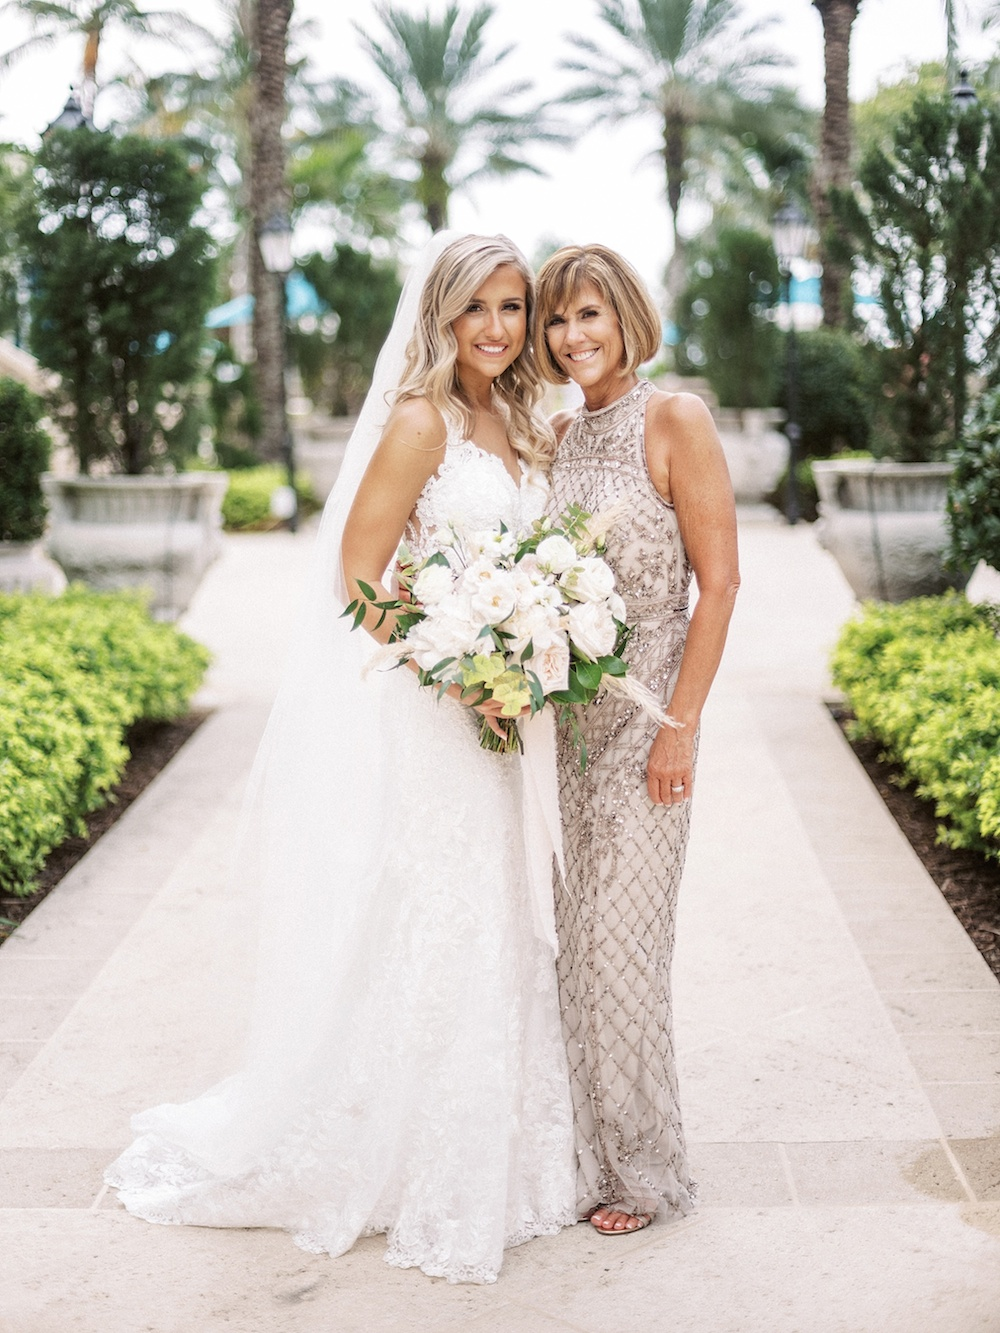 mother and daughter standing together on brides wedding day